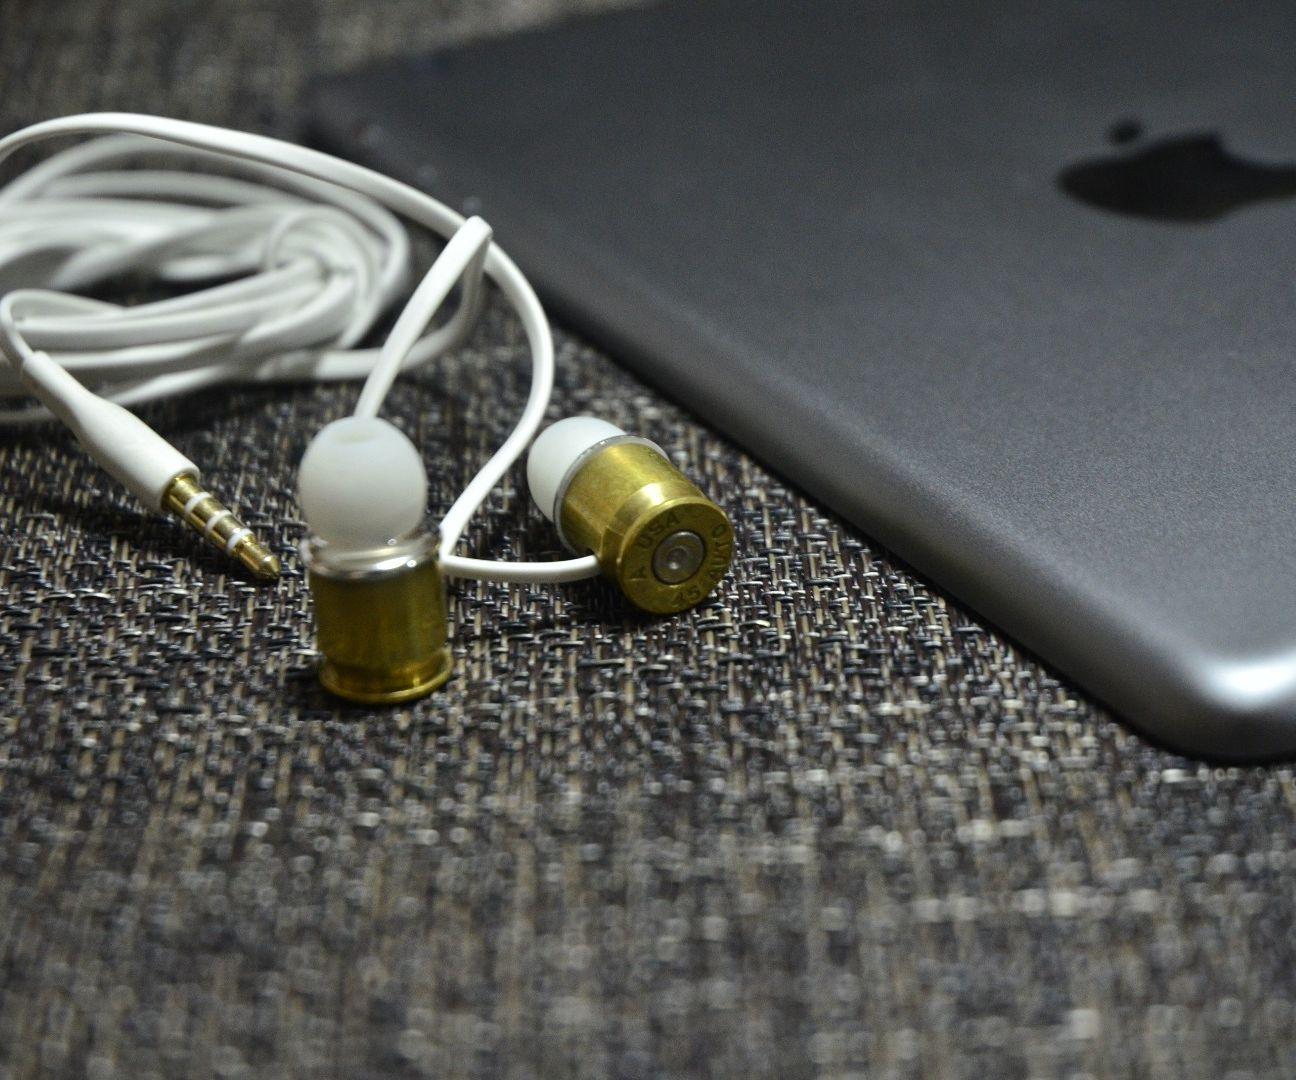 DIY .45 Caliber Earphone